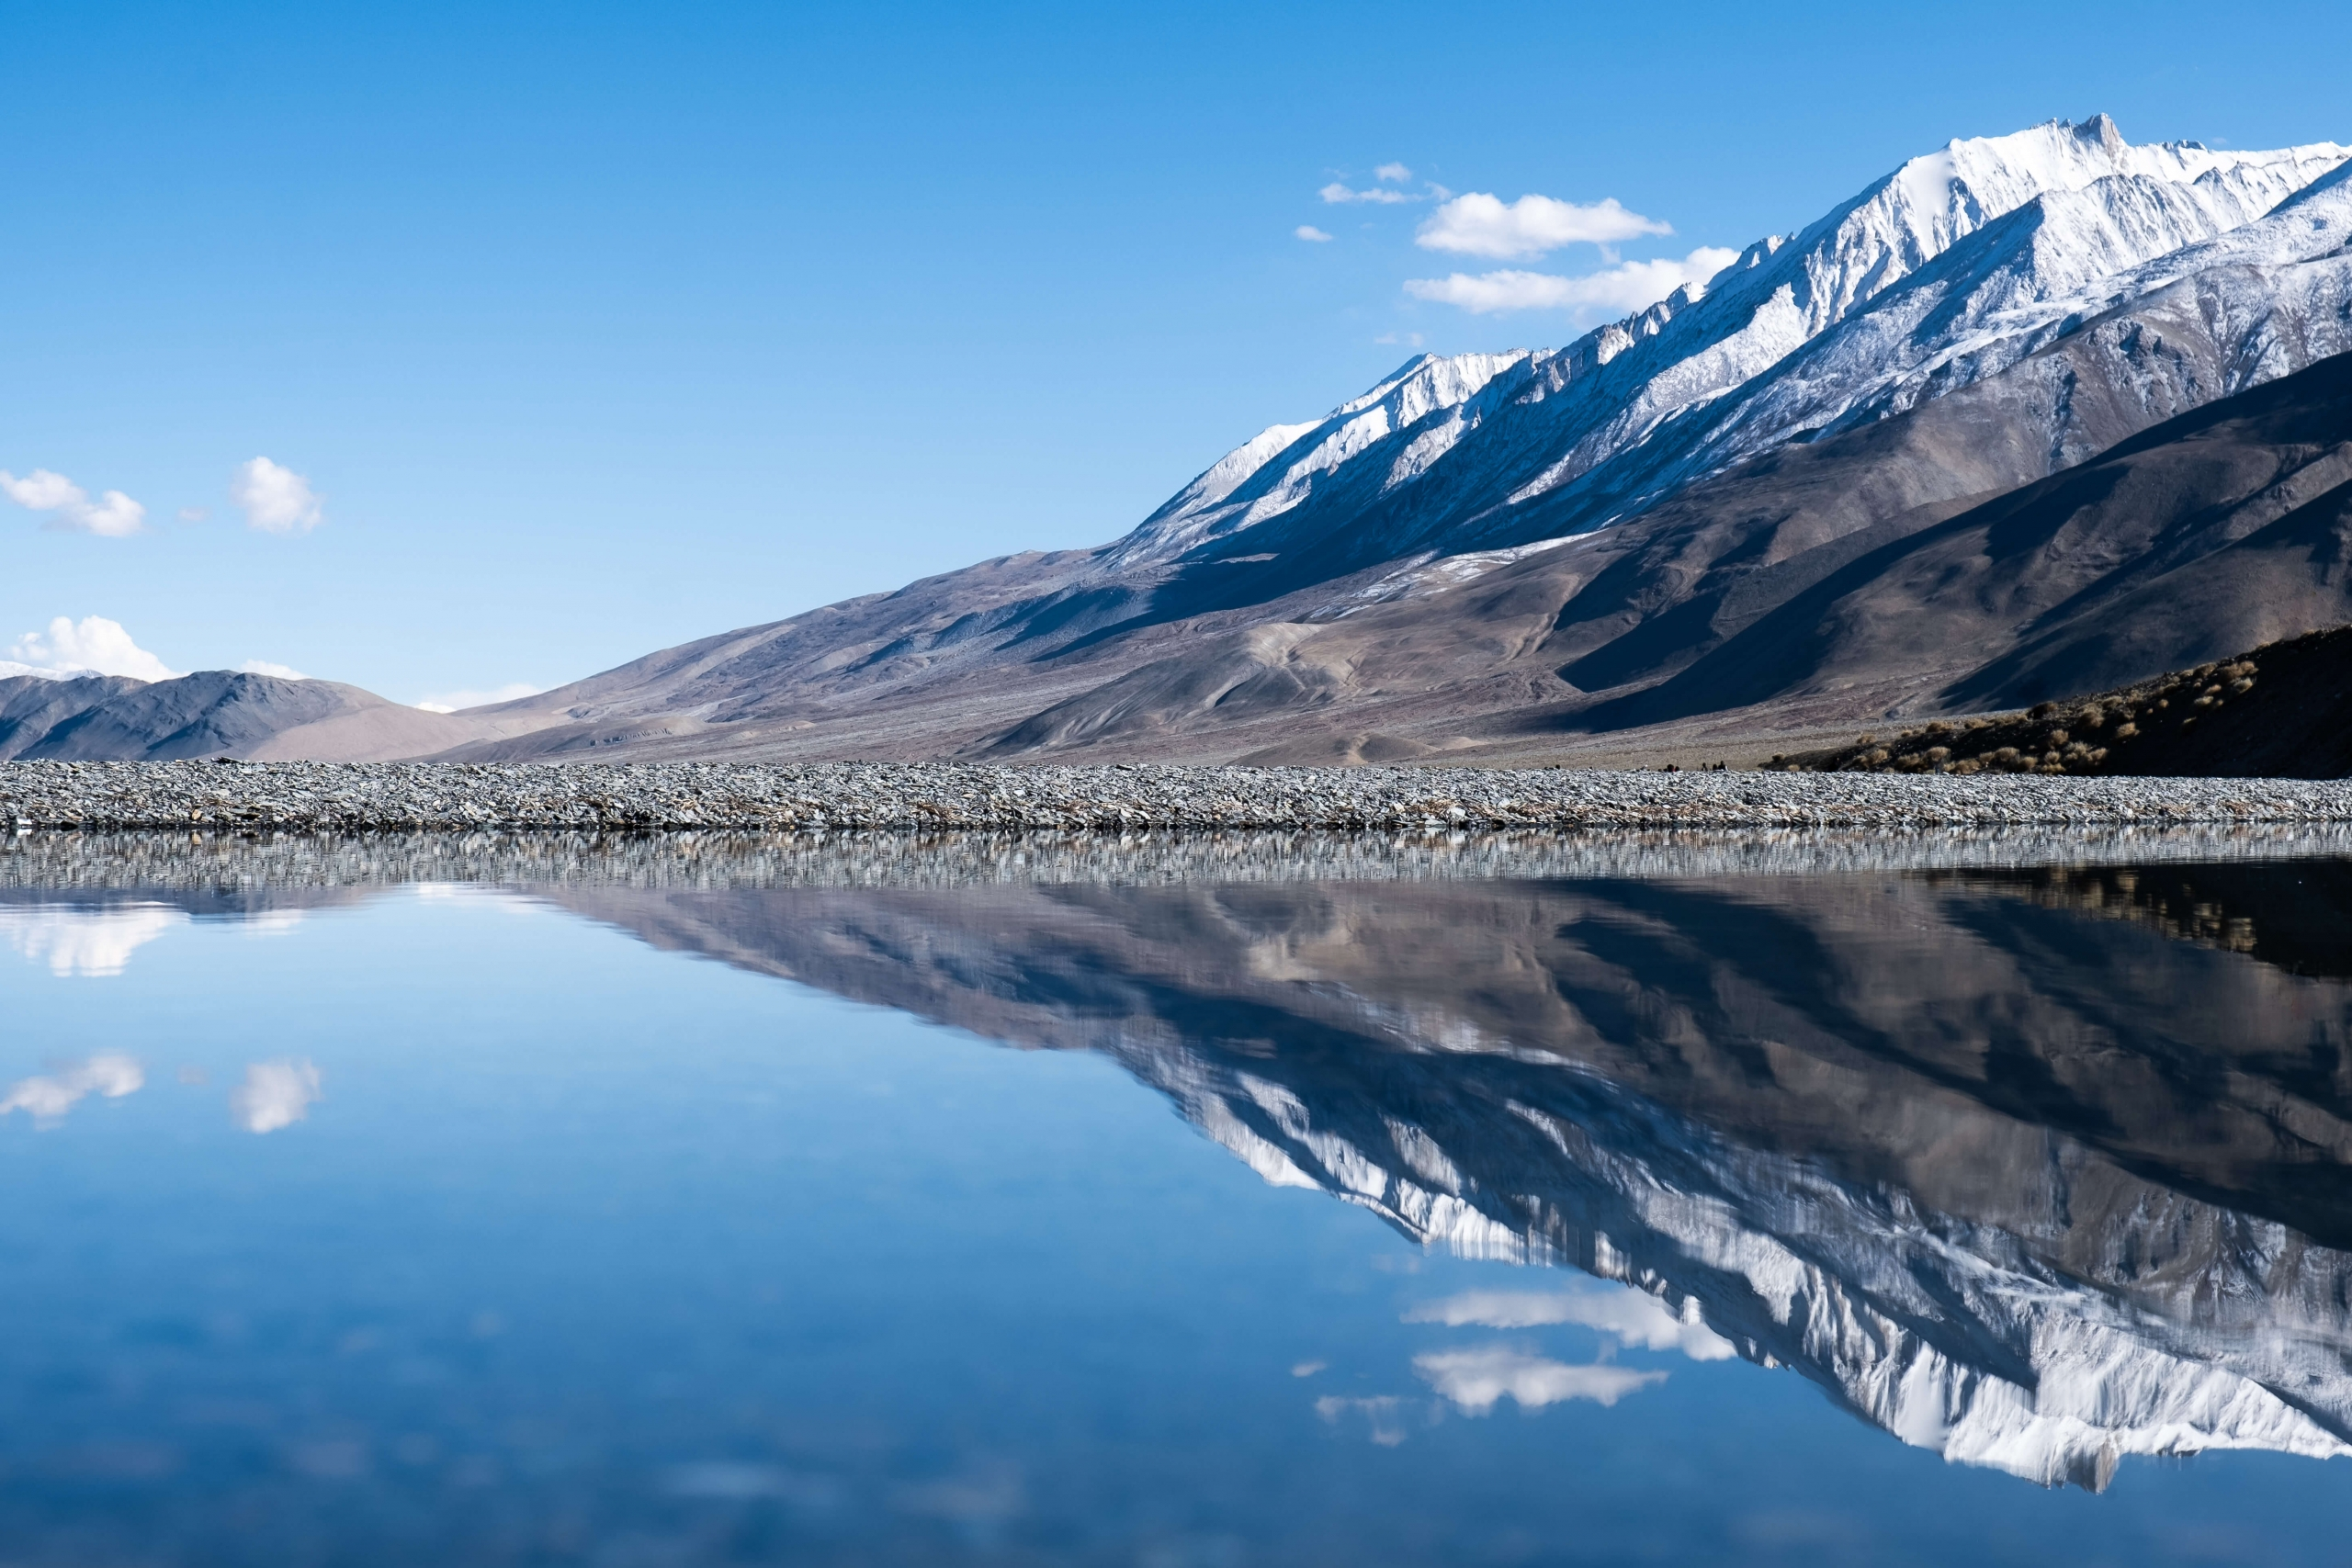 Mountain reflection at Pangong tso